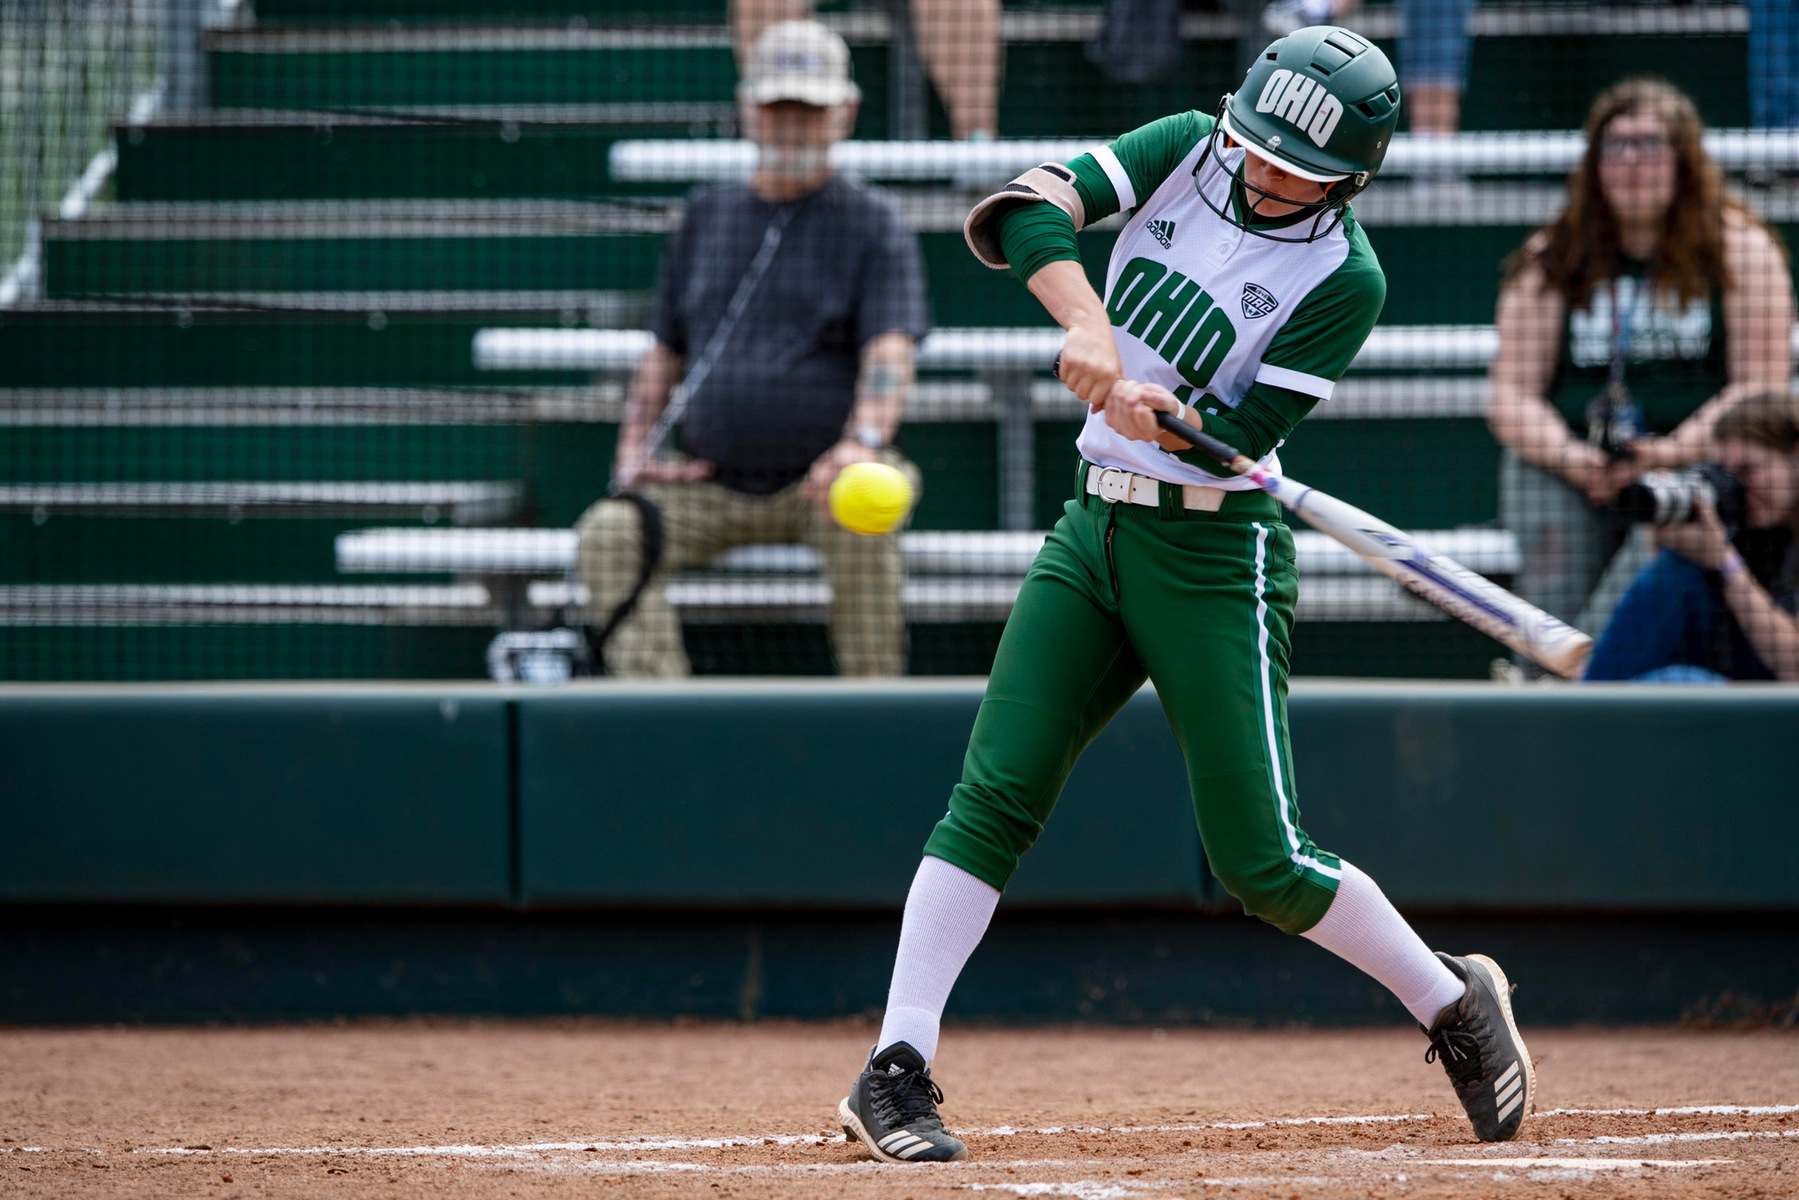 Ohio Softball Opens Series with Akron with a 9-4 Victory